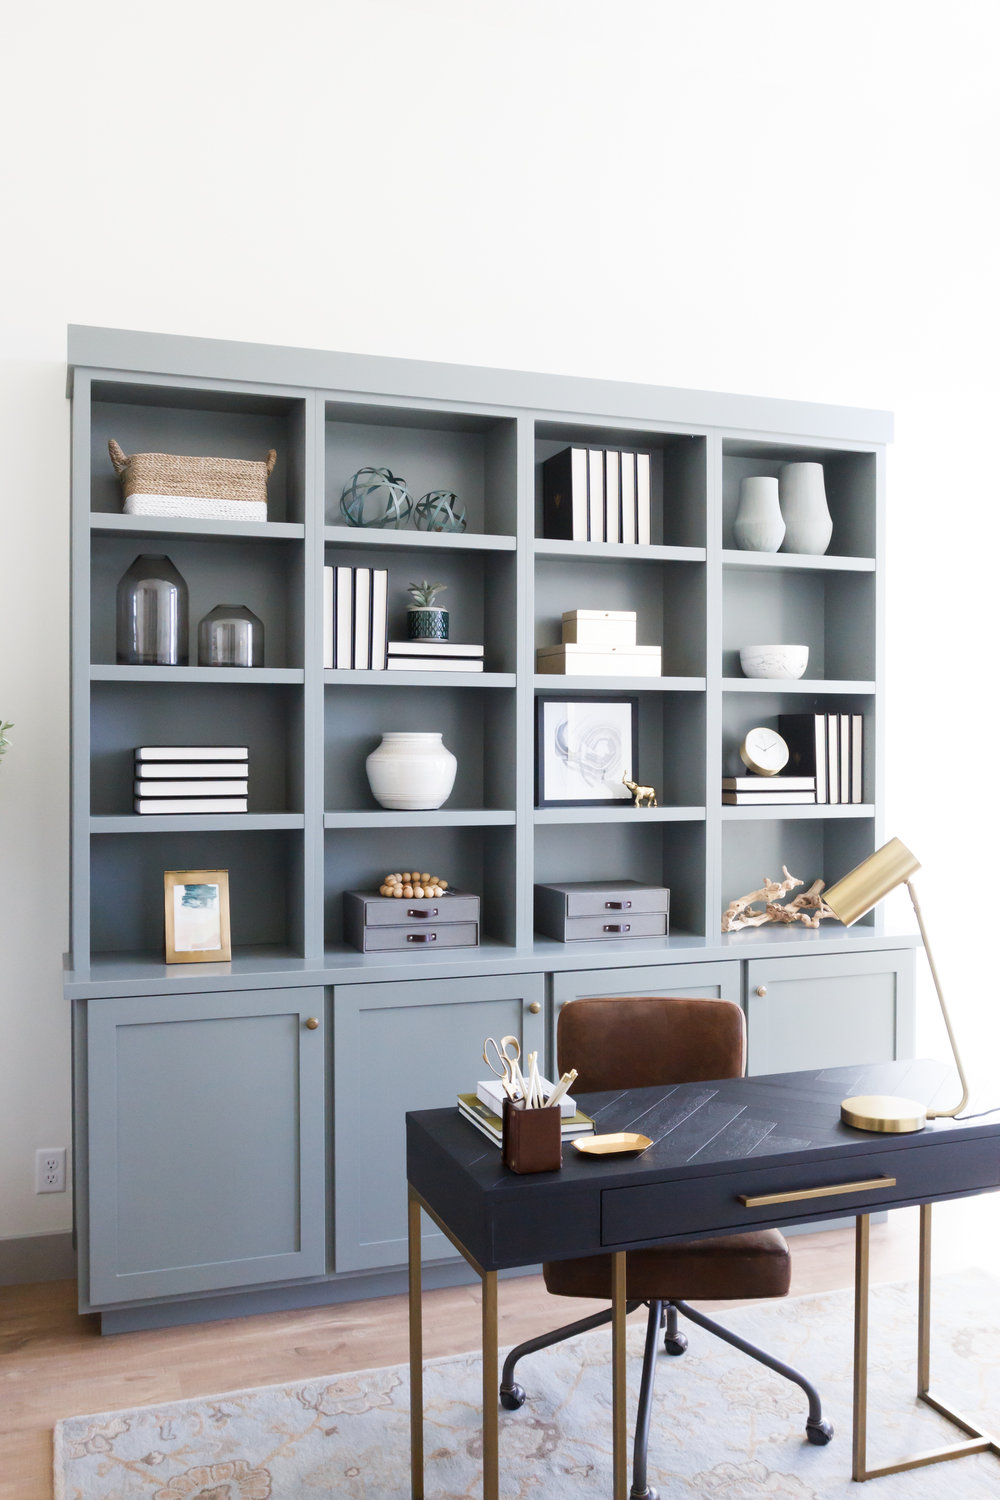 The Views Home Salt Box Collective In 2020 Home Office Cabinets Home Office Decor Office Interior Design